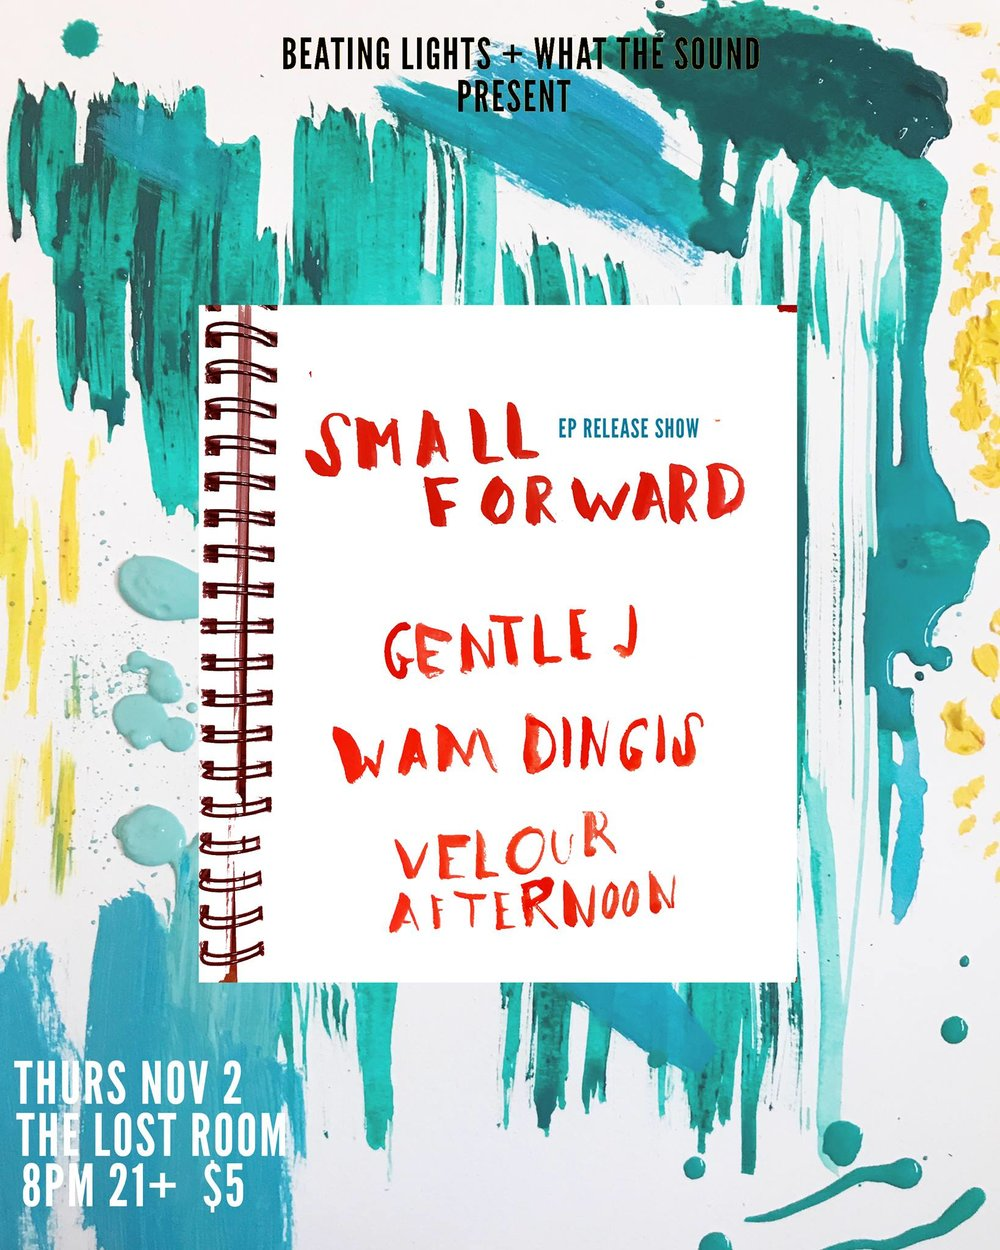 SMALL FORWARD / GENTLE J / WAM DINGIS / VELOUR AFTERNOON - Artwork by Shab FerdowsiNovember 2nd @ The Lost Room$5, 21+